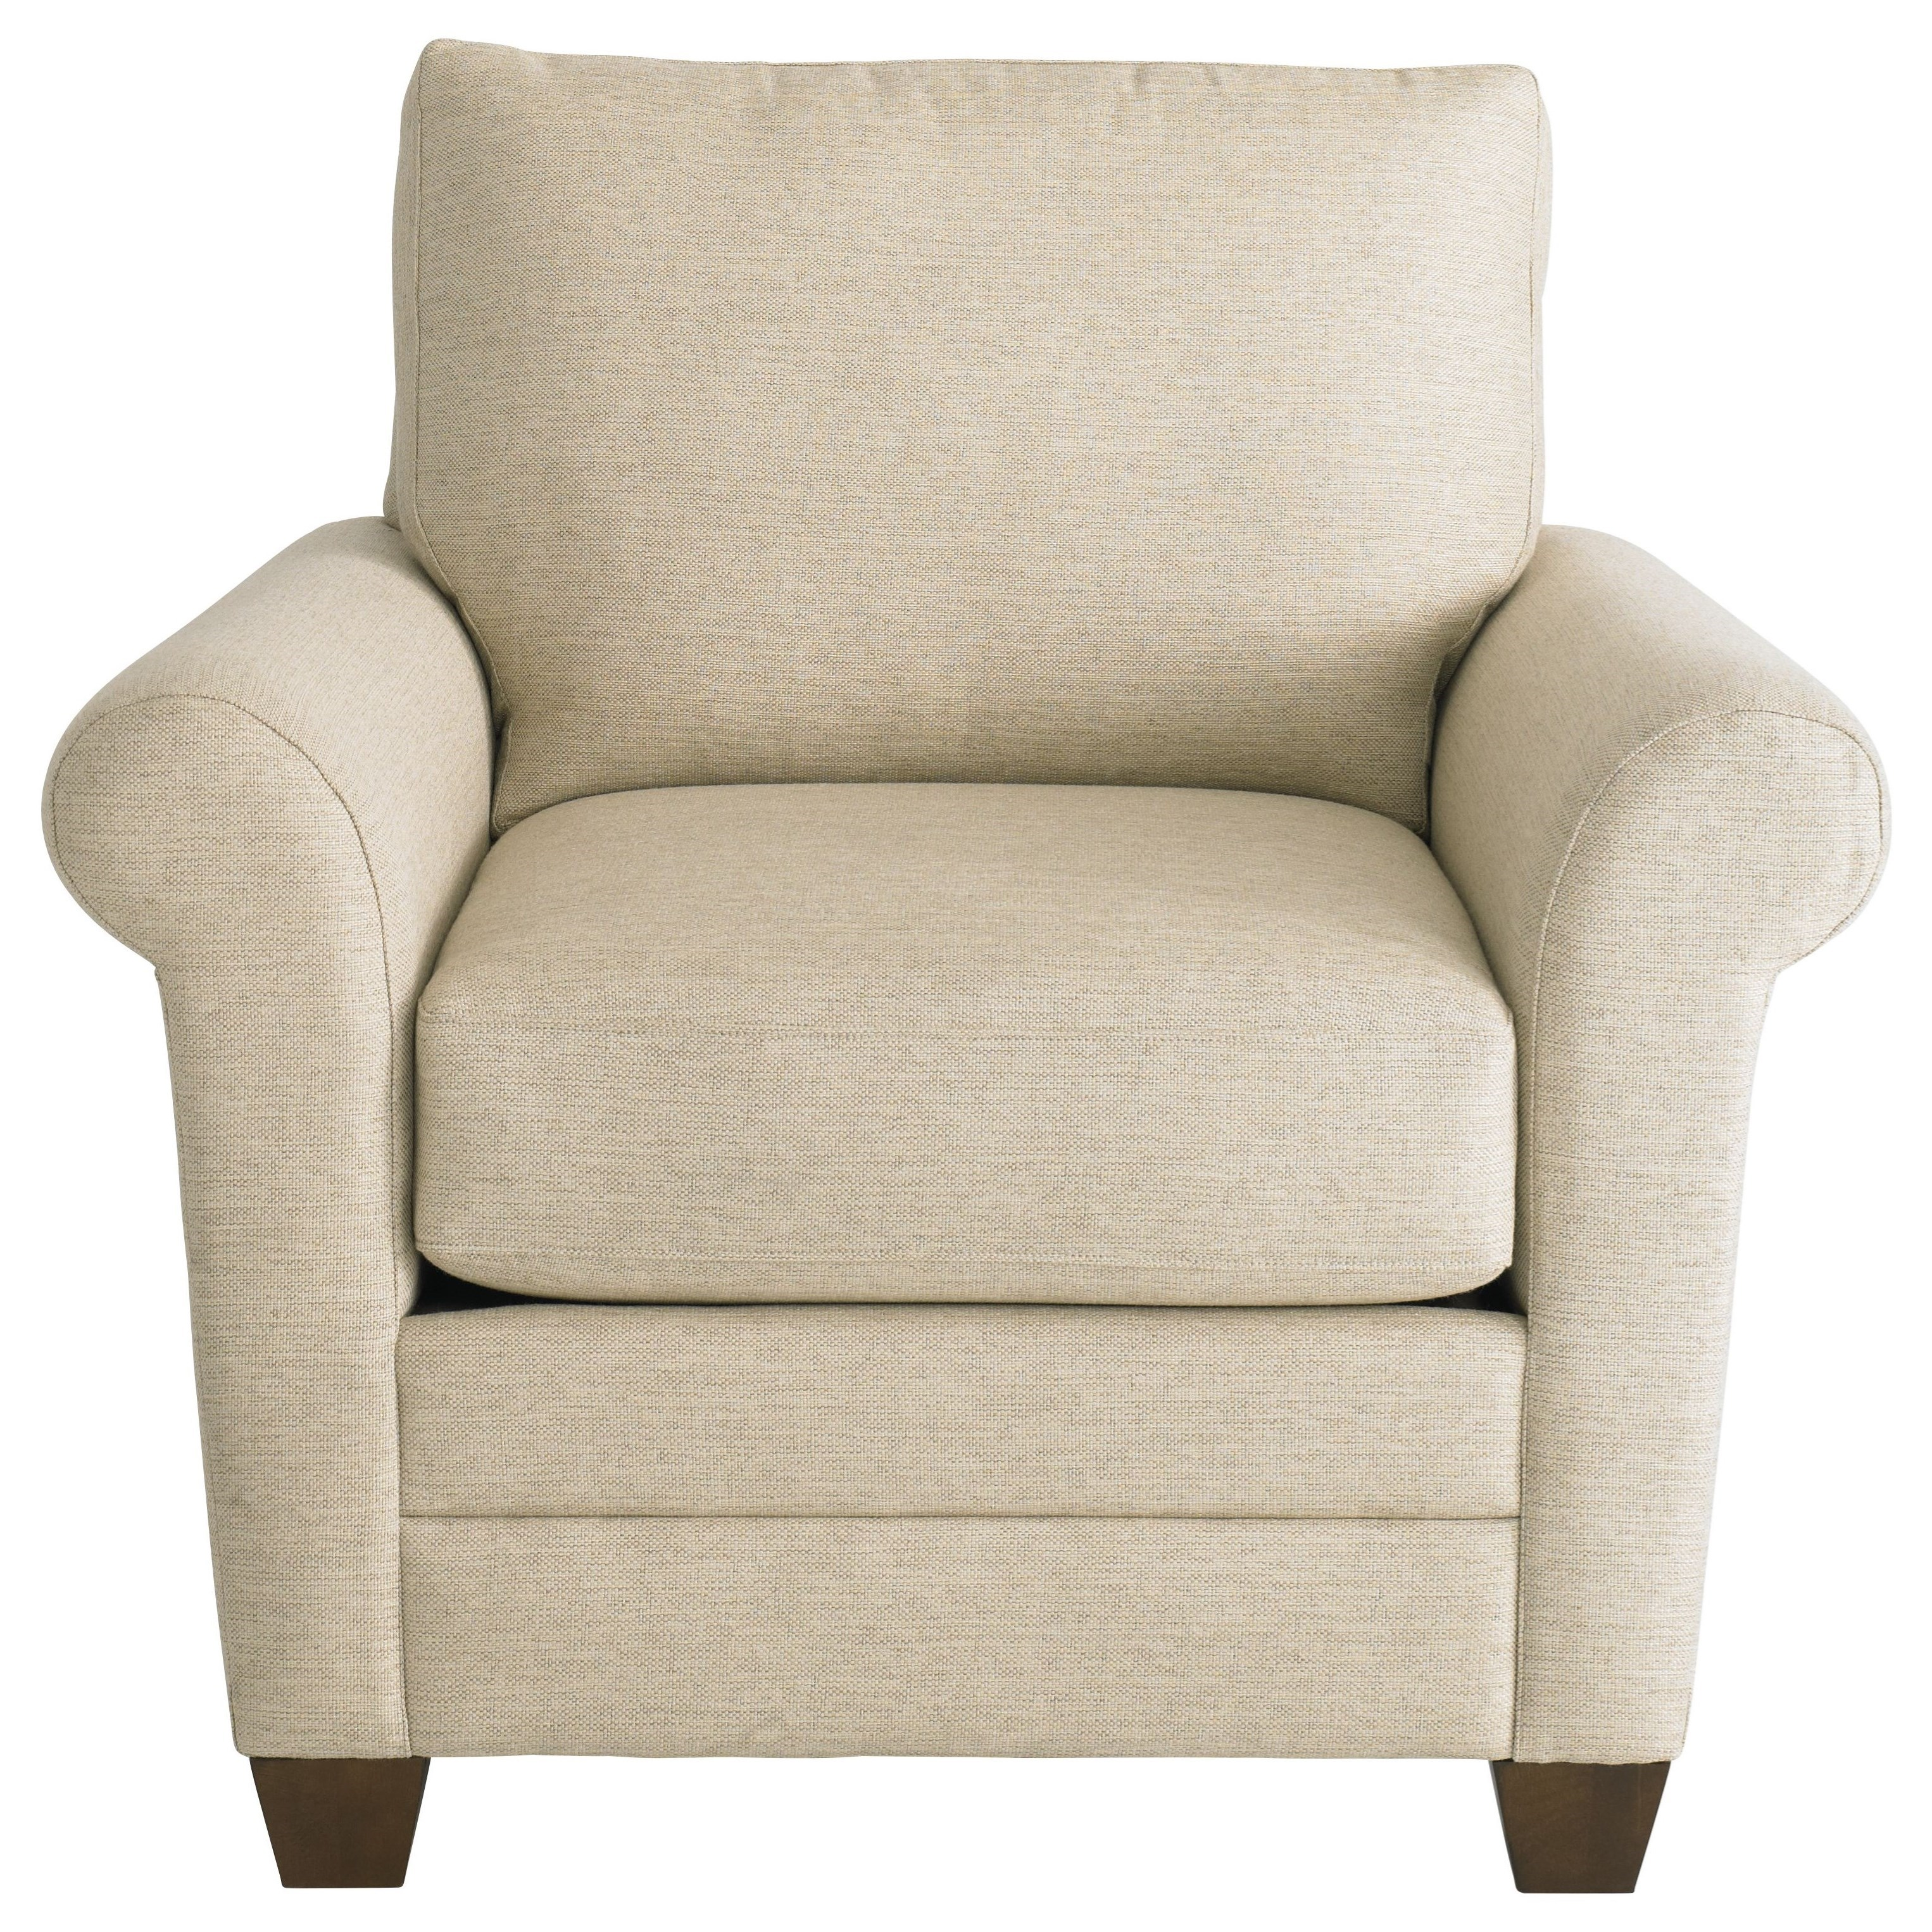 Andrew Chair by Bassett at Steger's Furniture